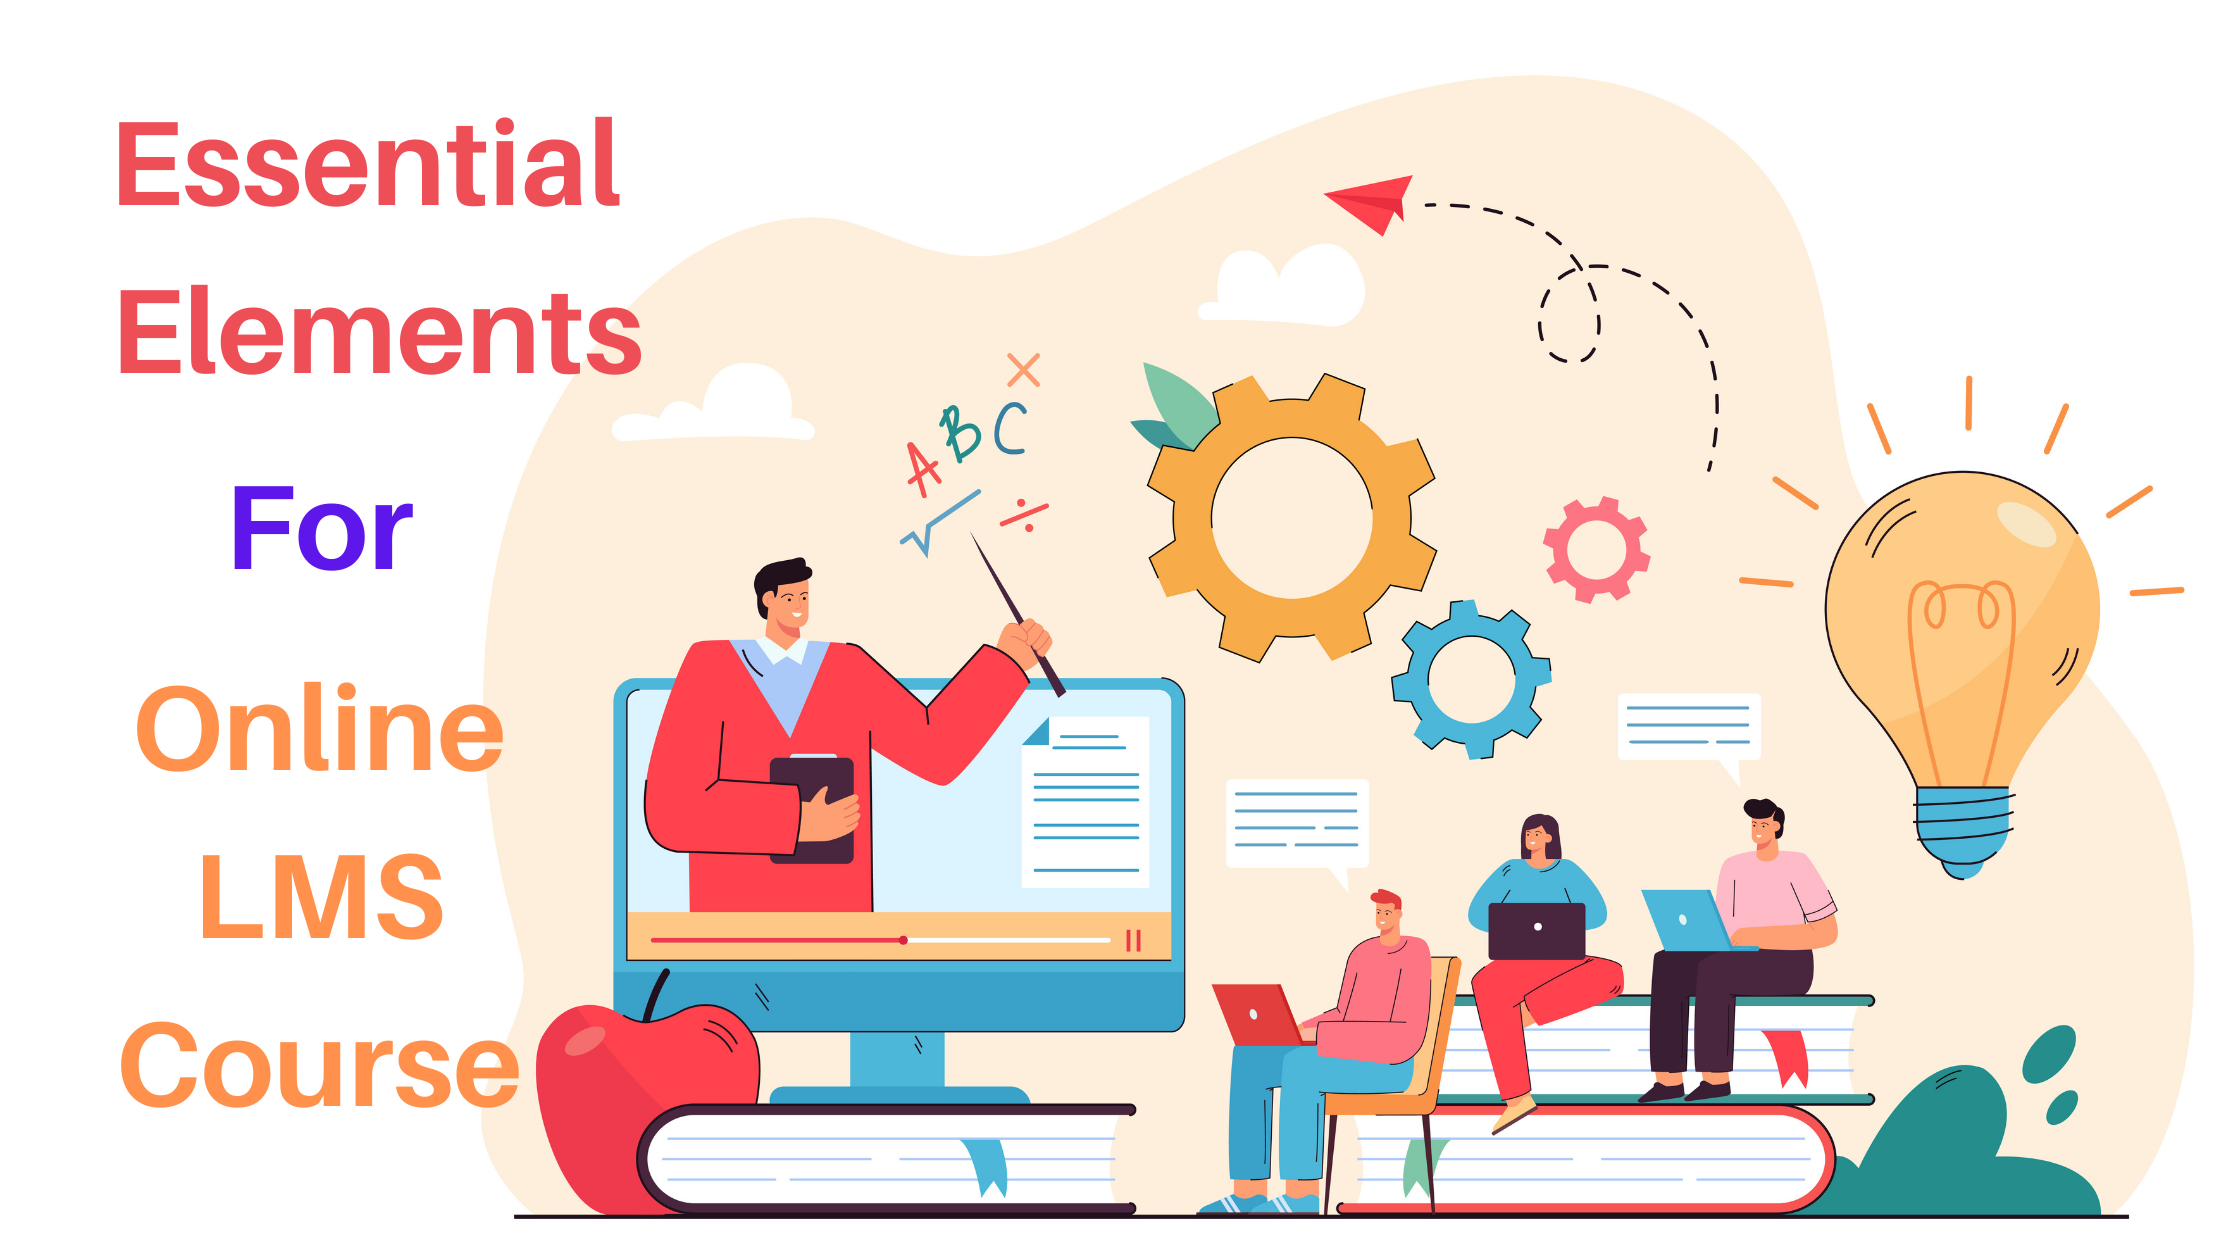 Essential elements for your online LMS course